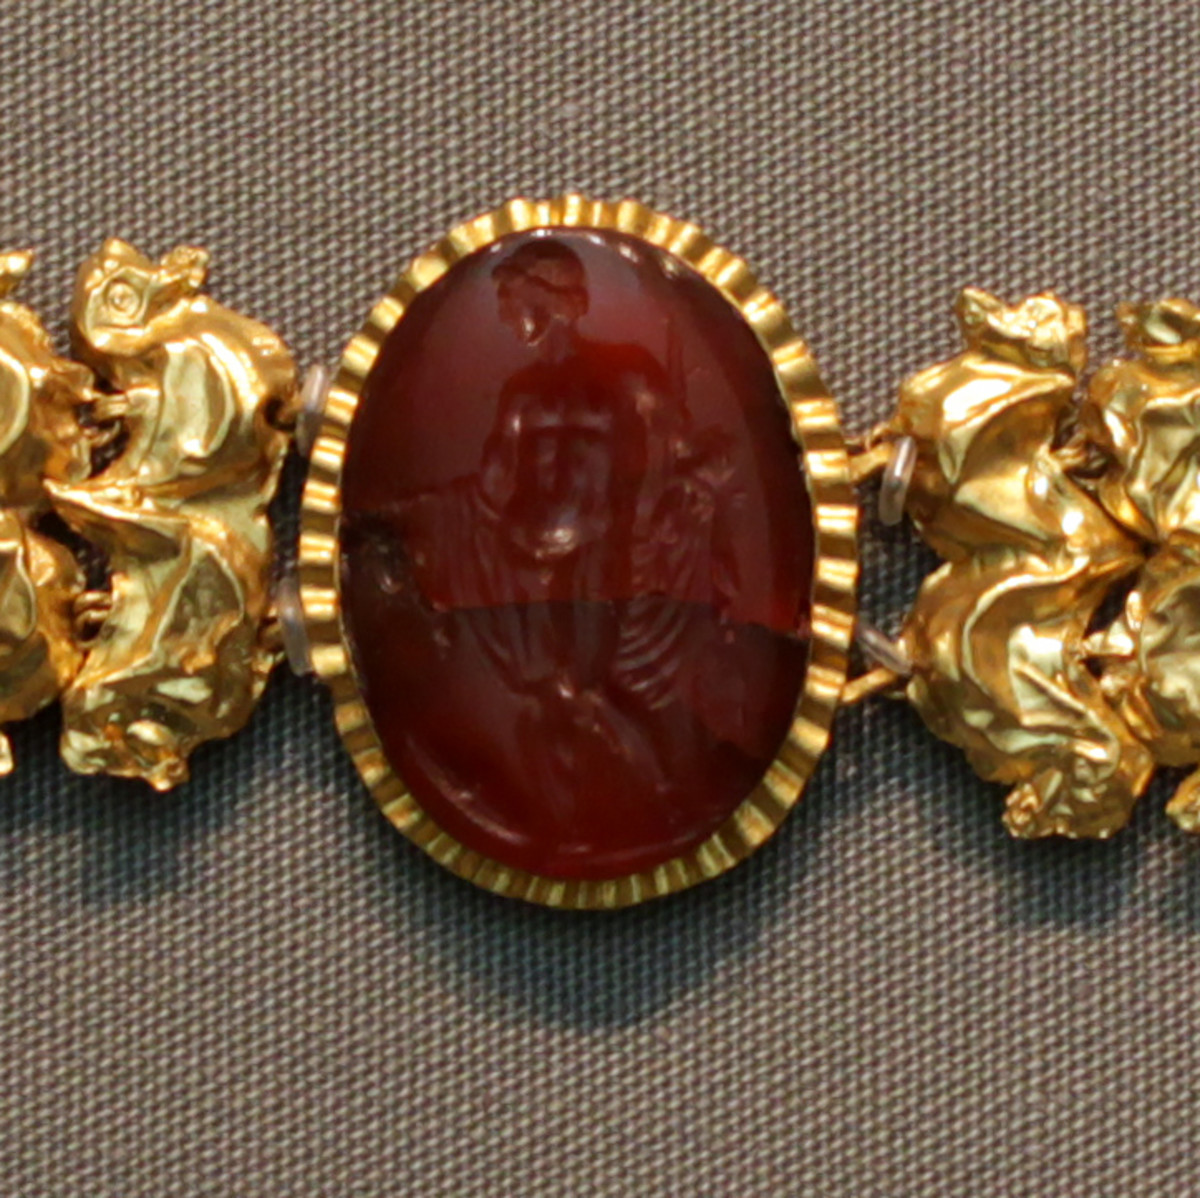 An image of engraved carnelian. This gemstone was highly valued in ancient times, often made as engraved jewelry used as protection.